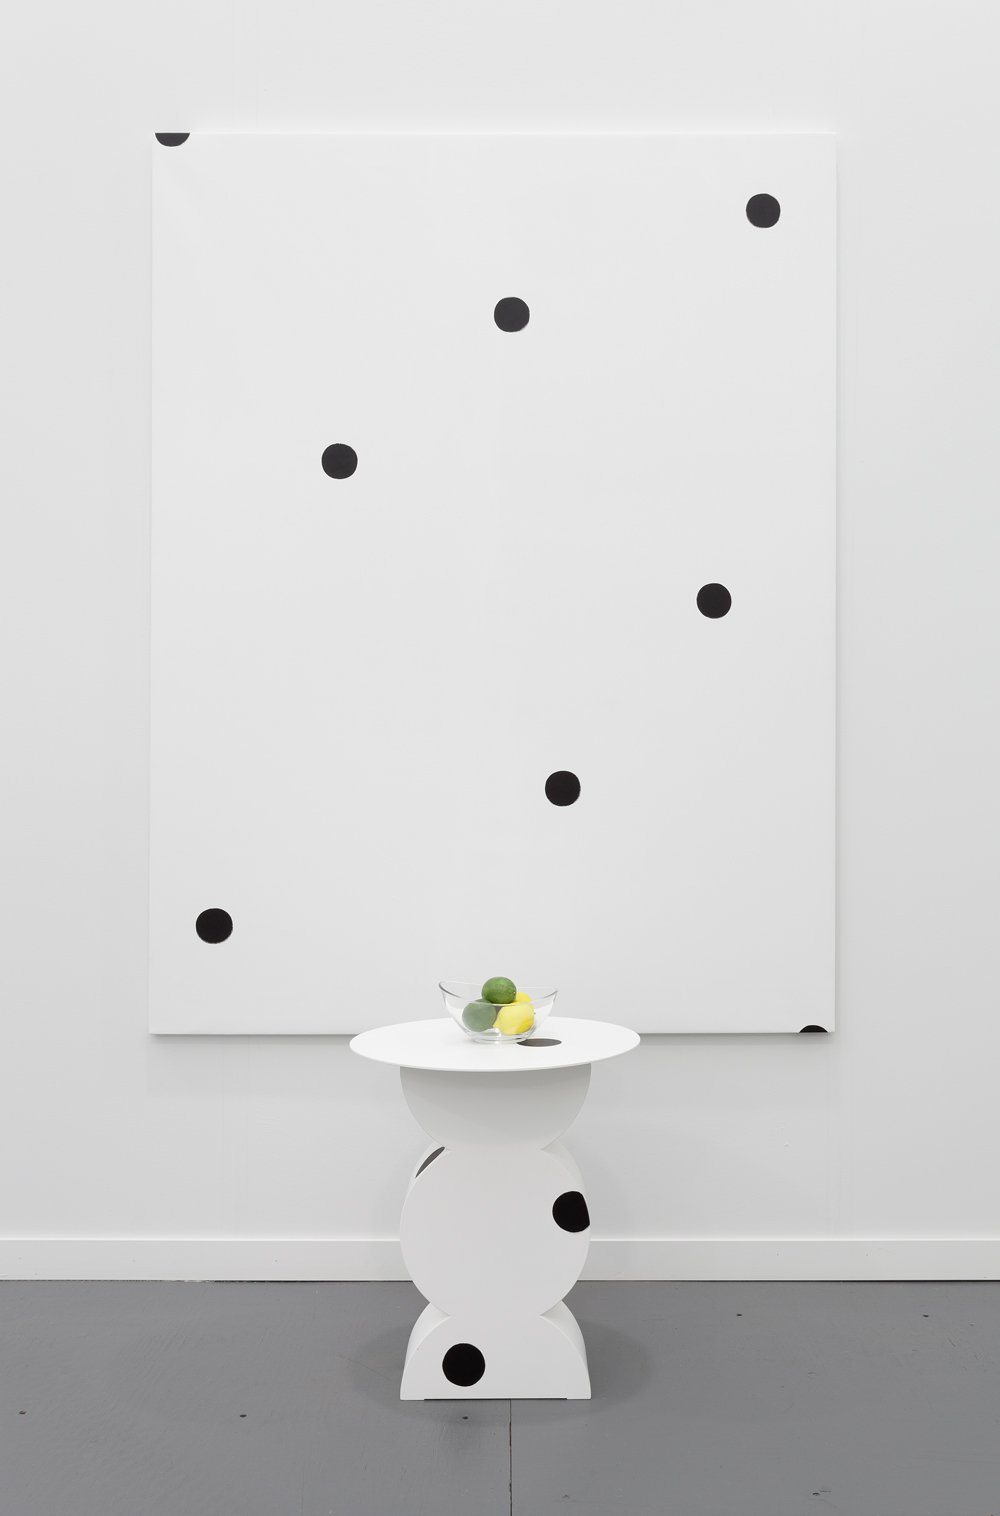 Margaret Lee, (Studio Simon Gavina Constantin) + Dot Painting + Lemons + Limes, 2014, MDF, oil paint, gesso, canvas, ceramic, acrylic paint, painting: 54 in x 72 inches, sculpture: 23.2 in x 18.9 in x 18.9 inches